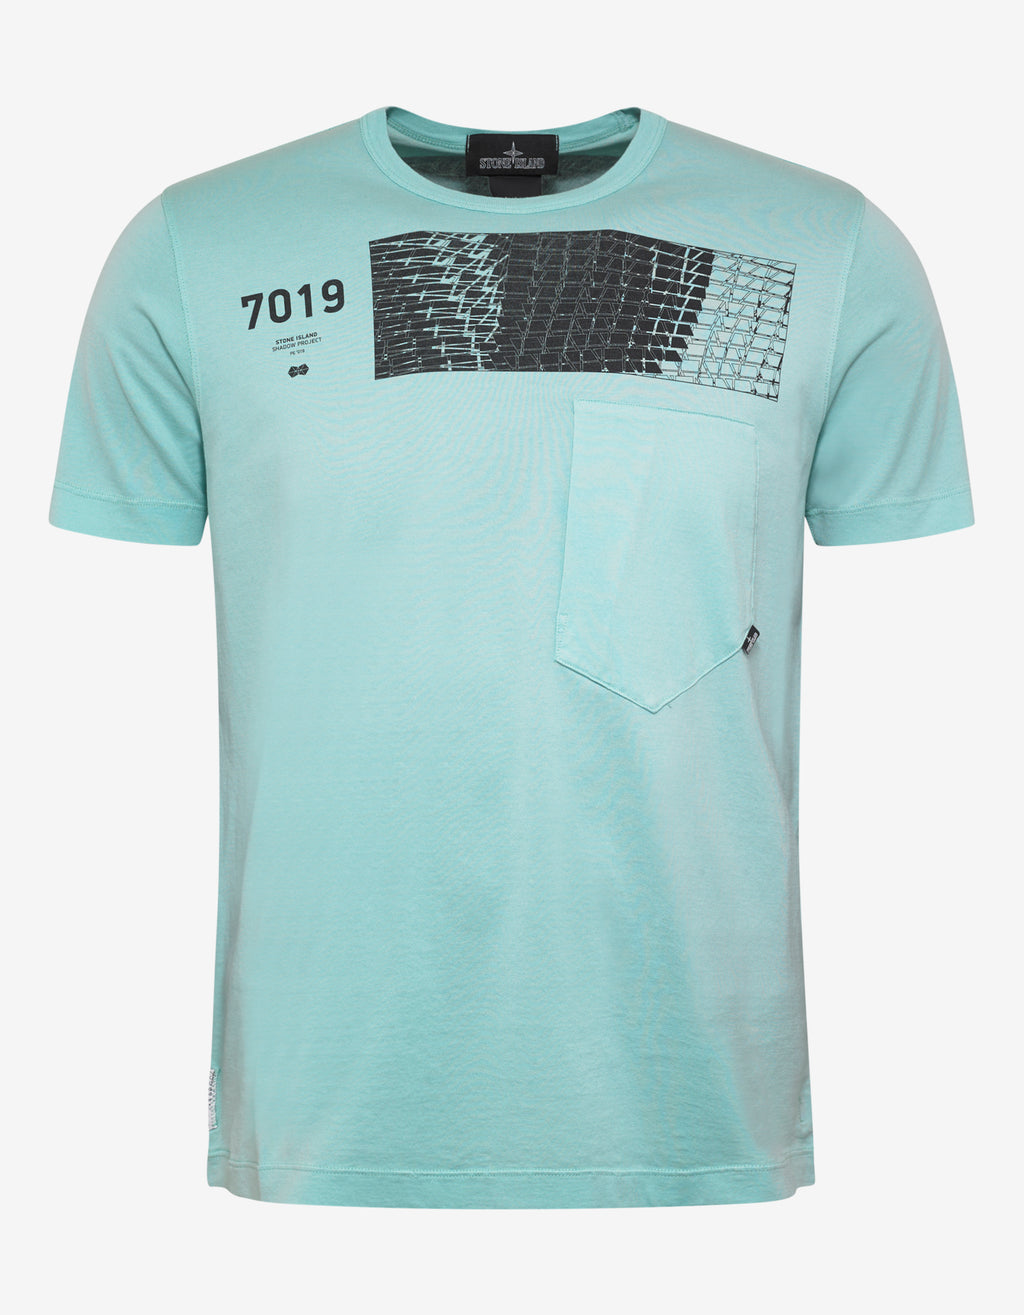 Teal Graphic T-Shirt